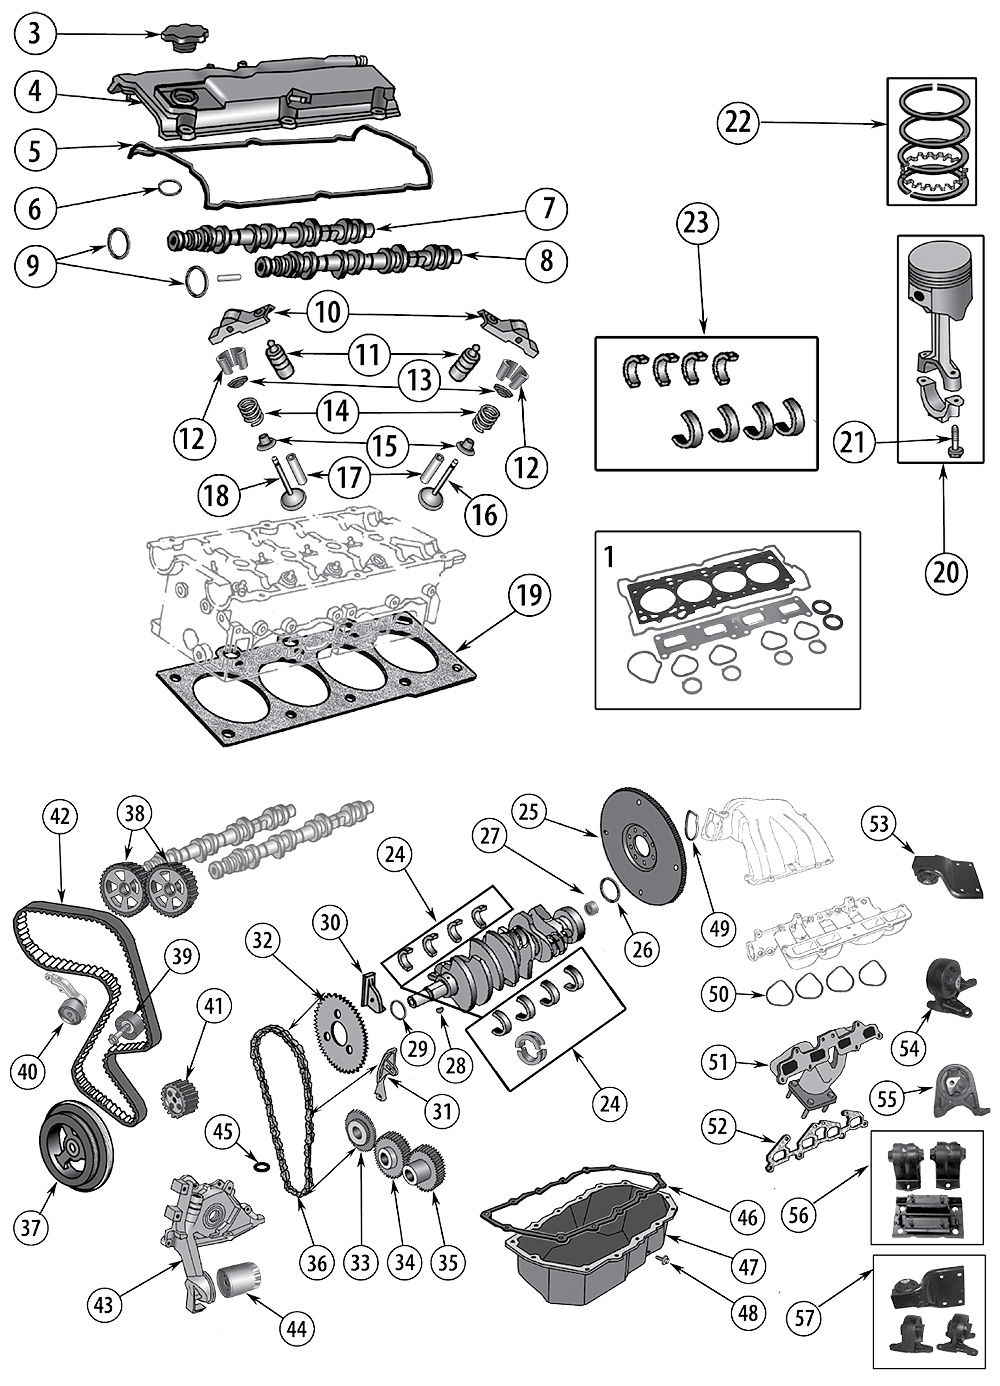 1996 Dodge Stratu 2 4 Dohc Engine Diagram